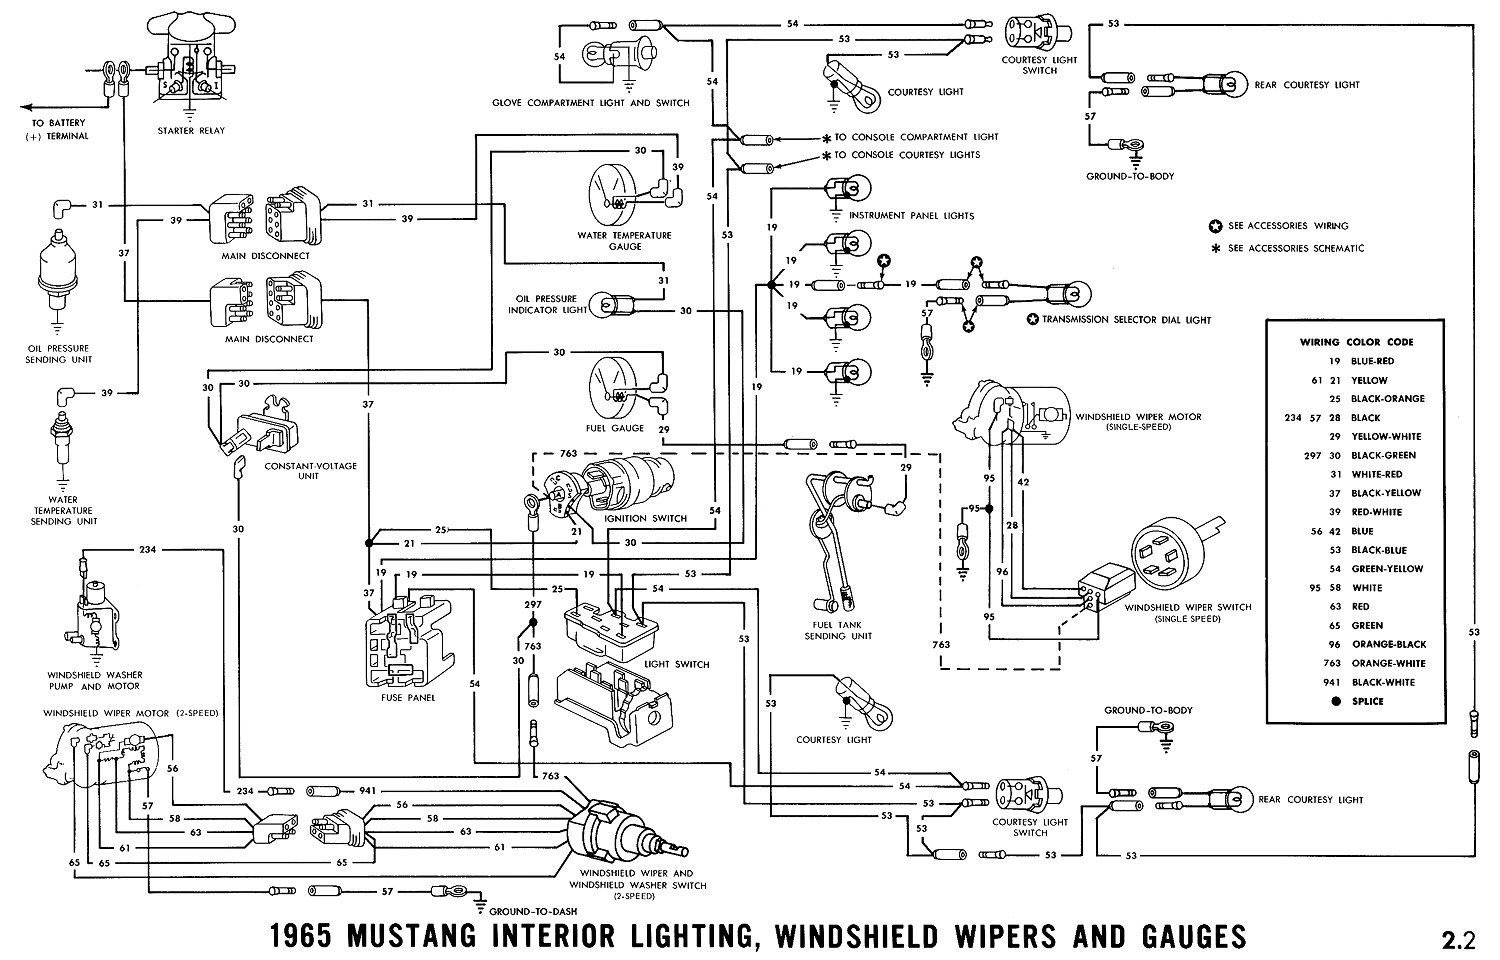 1965g 1965 mustang wiring diagrams average joe restoration  at bayanpartner.co